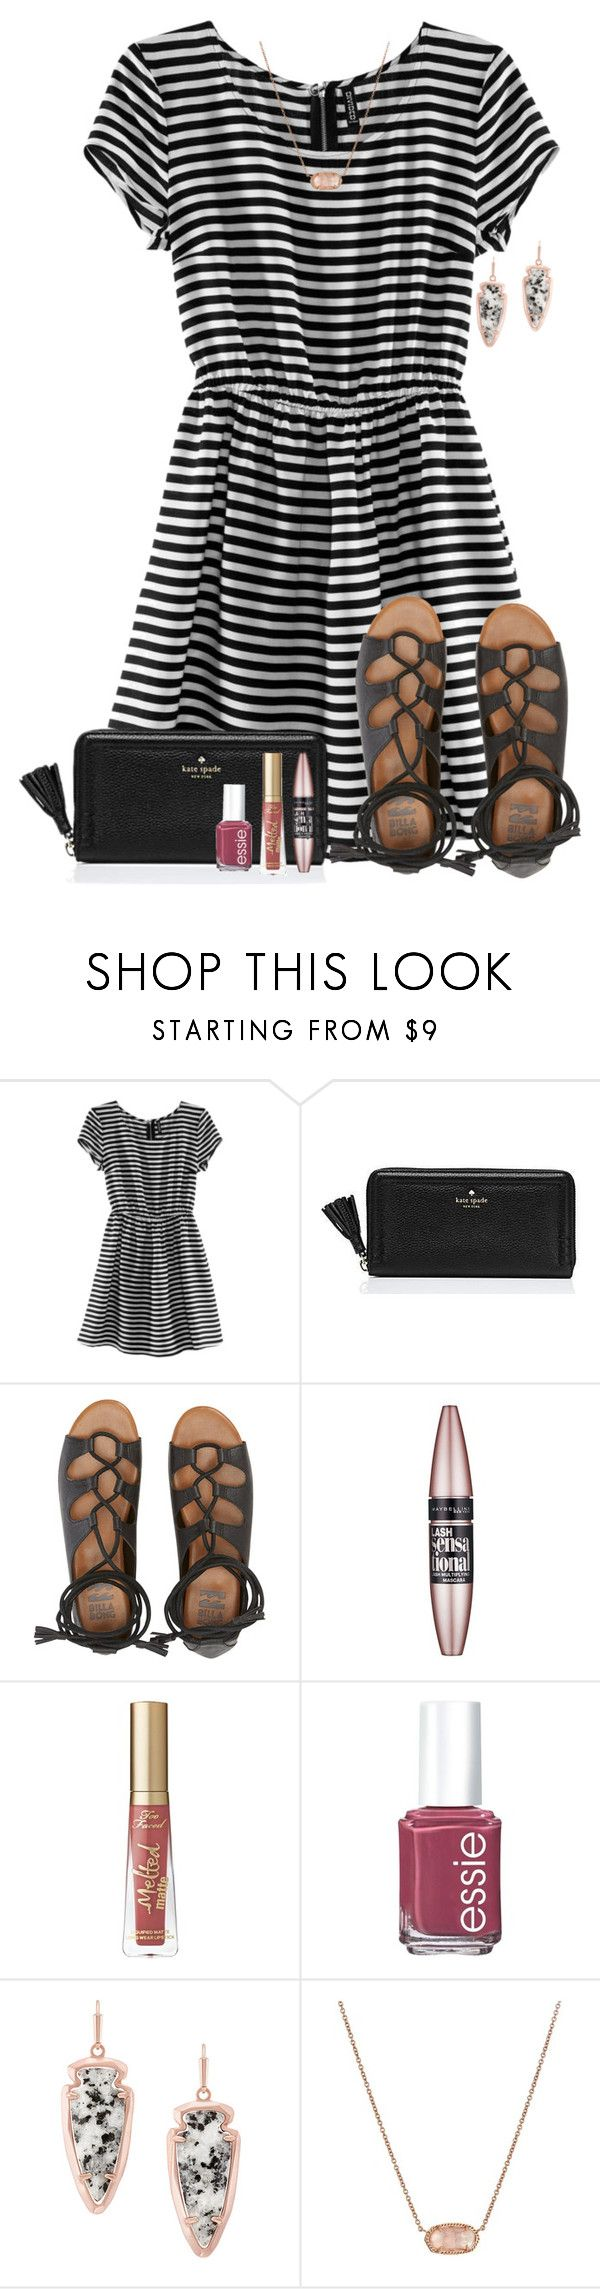 """eighty one 